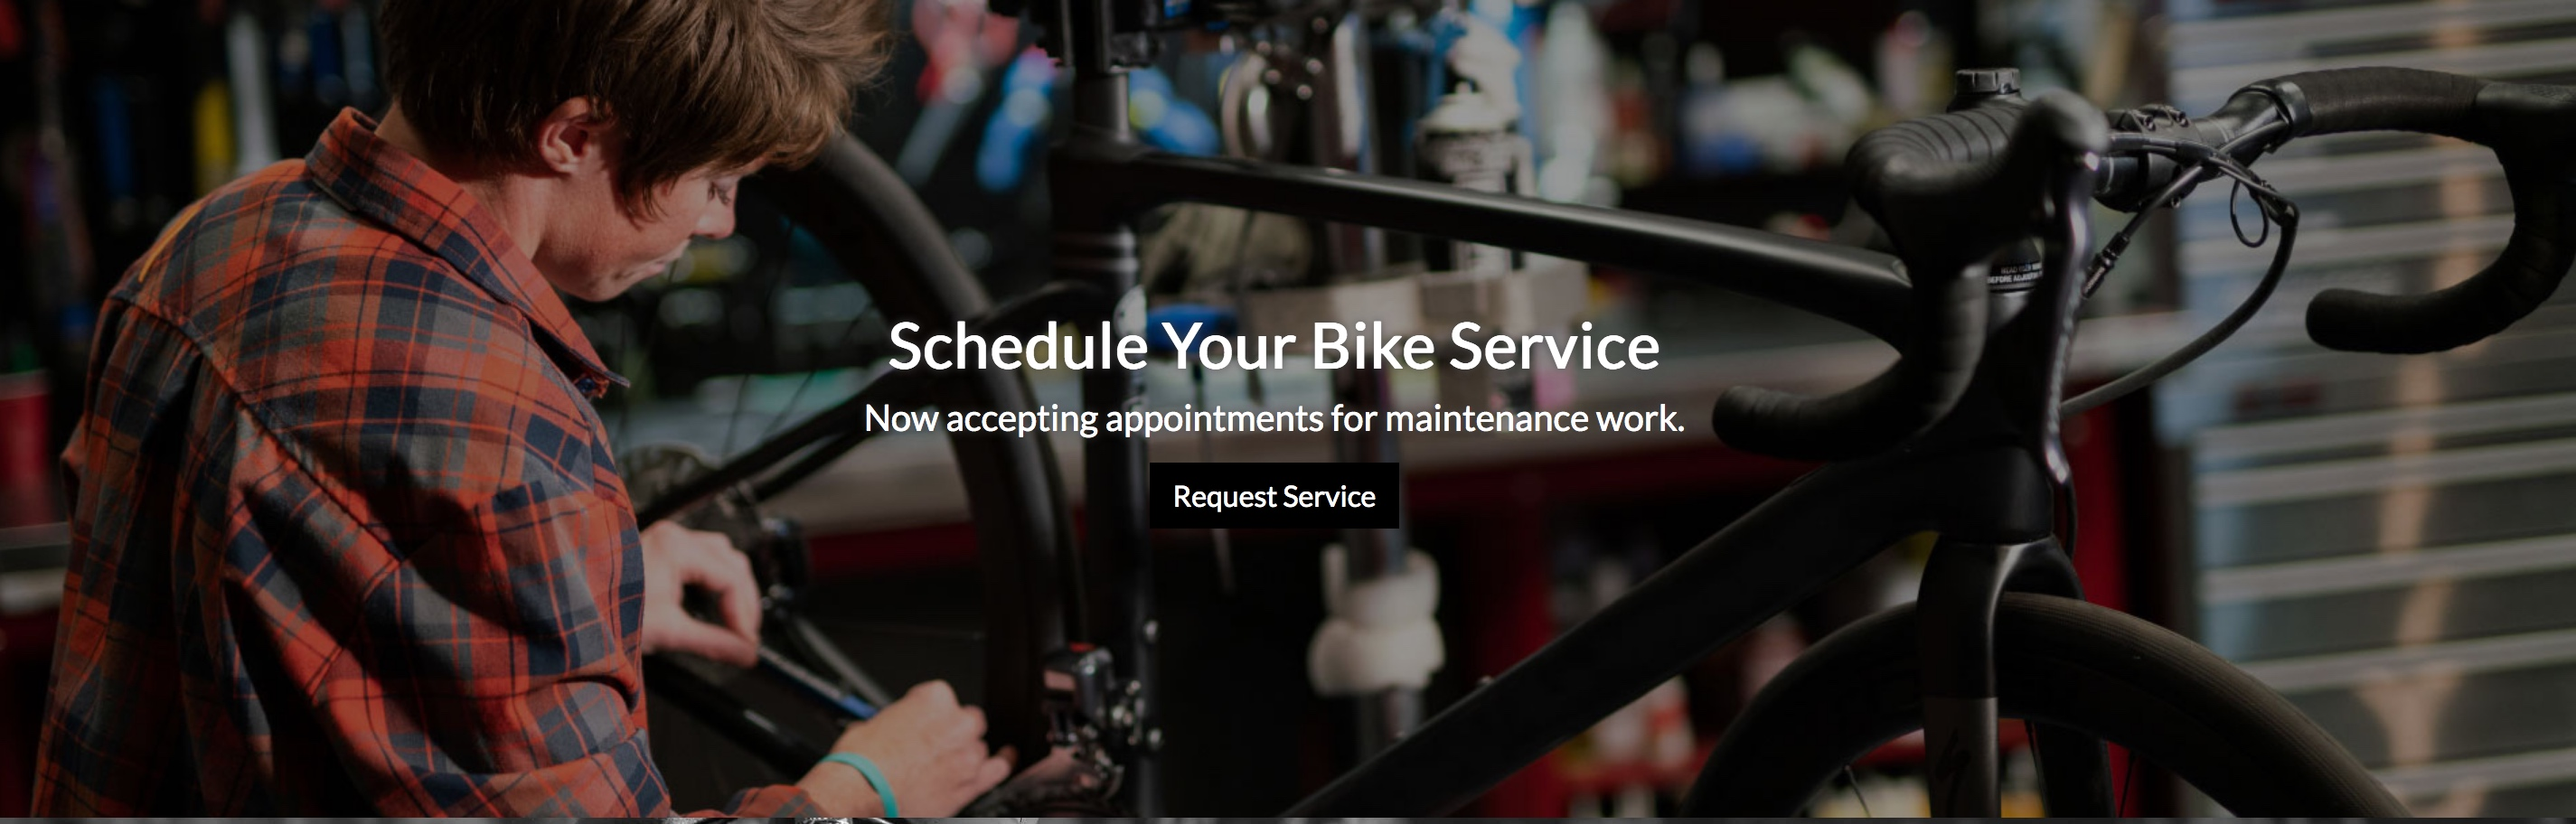 Make a service appointment